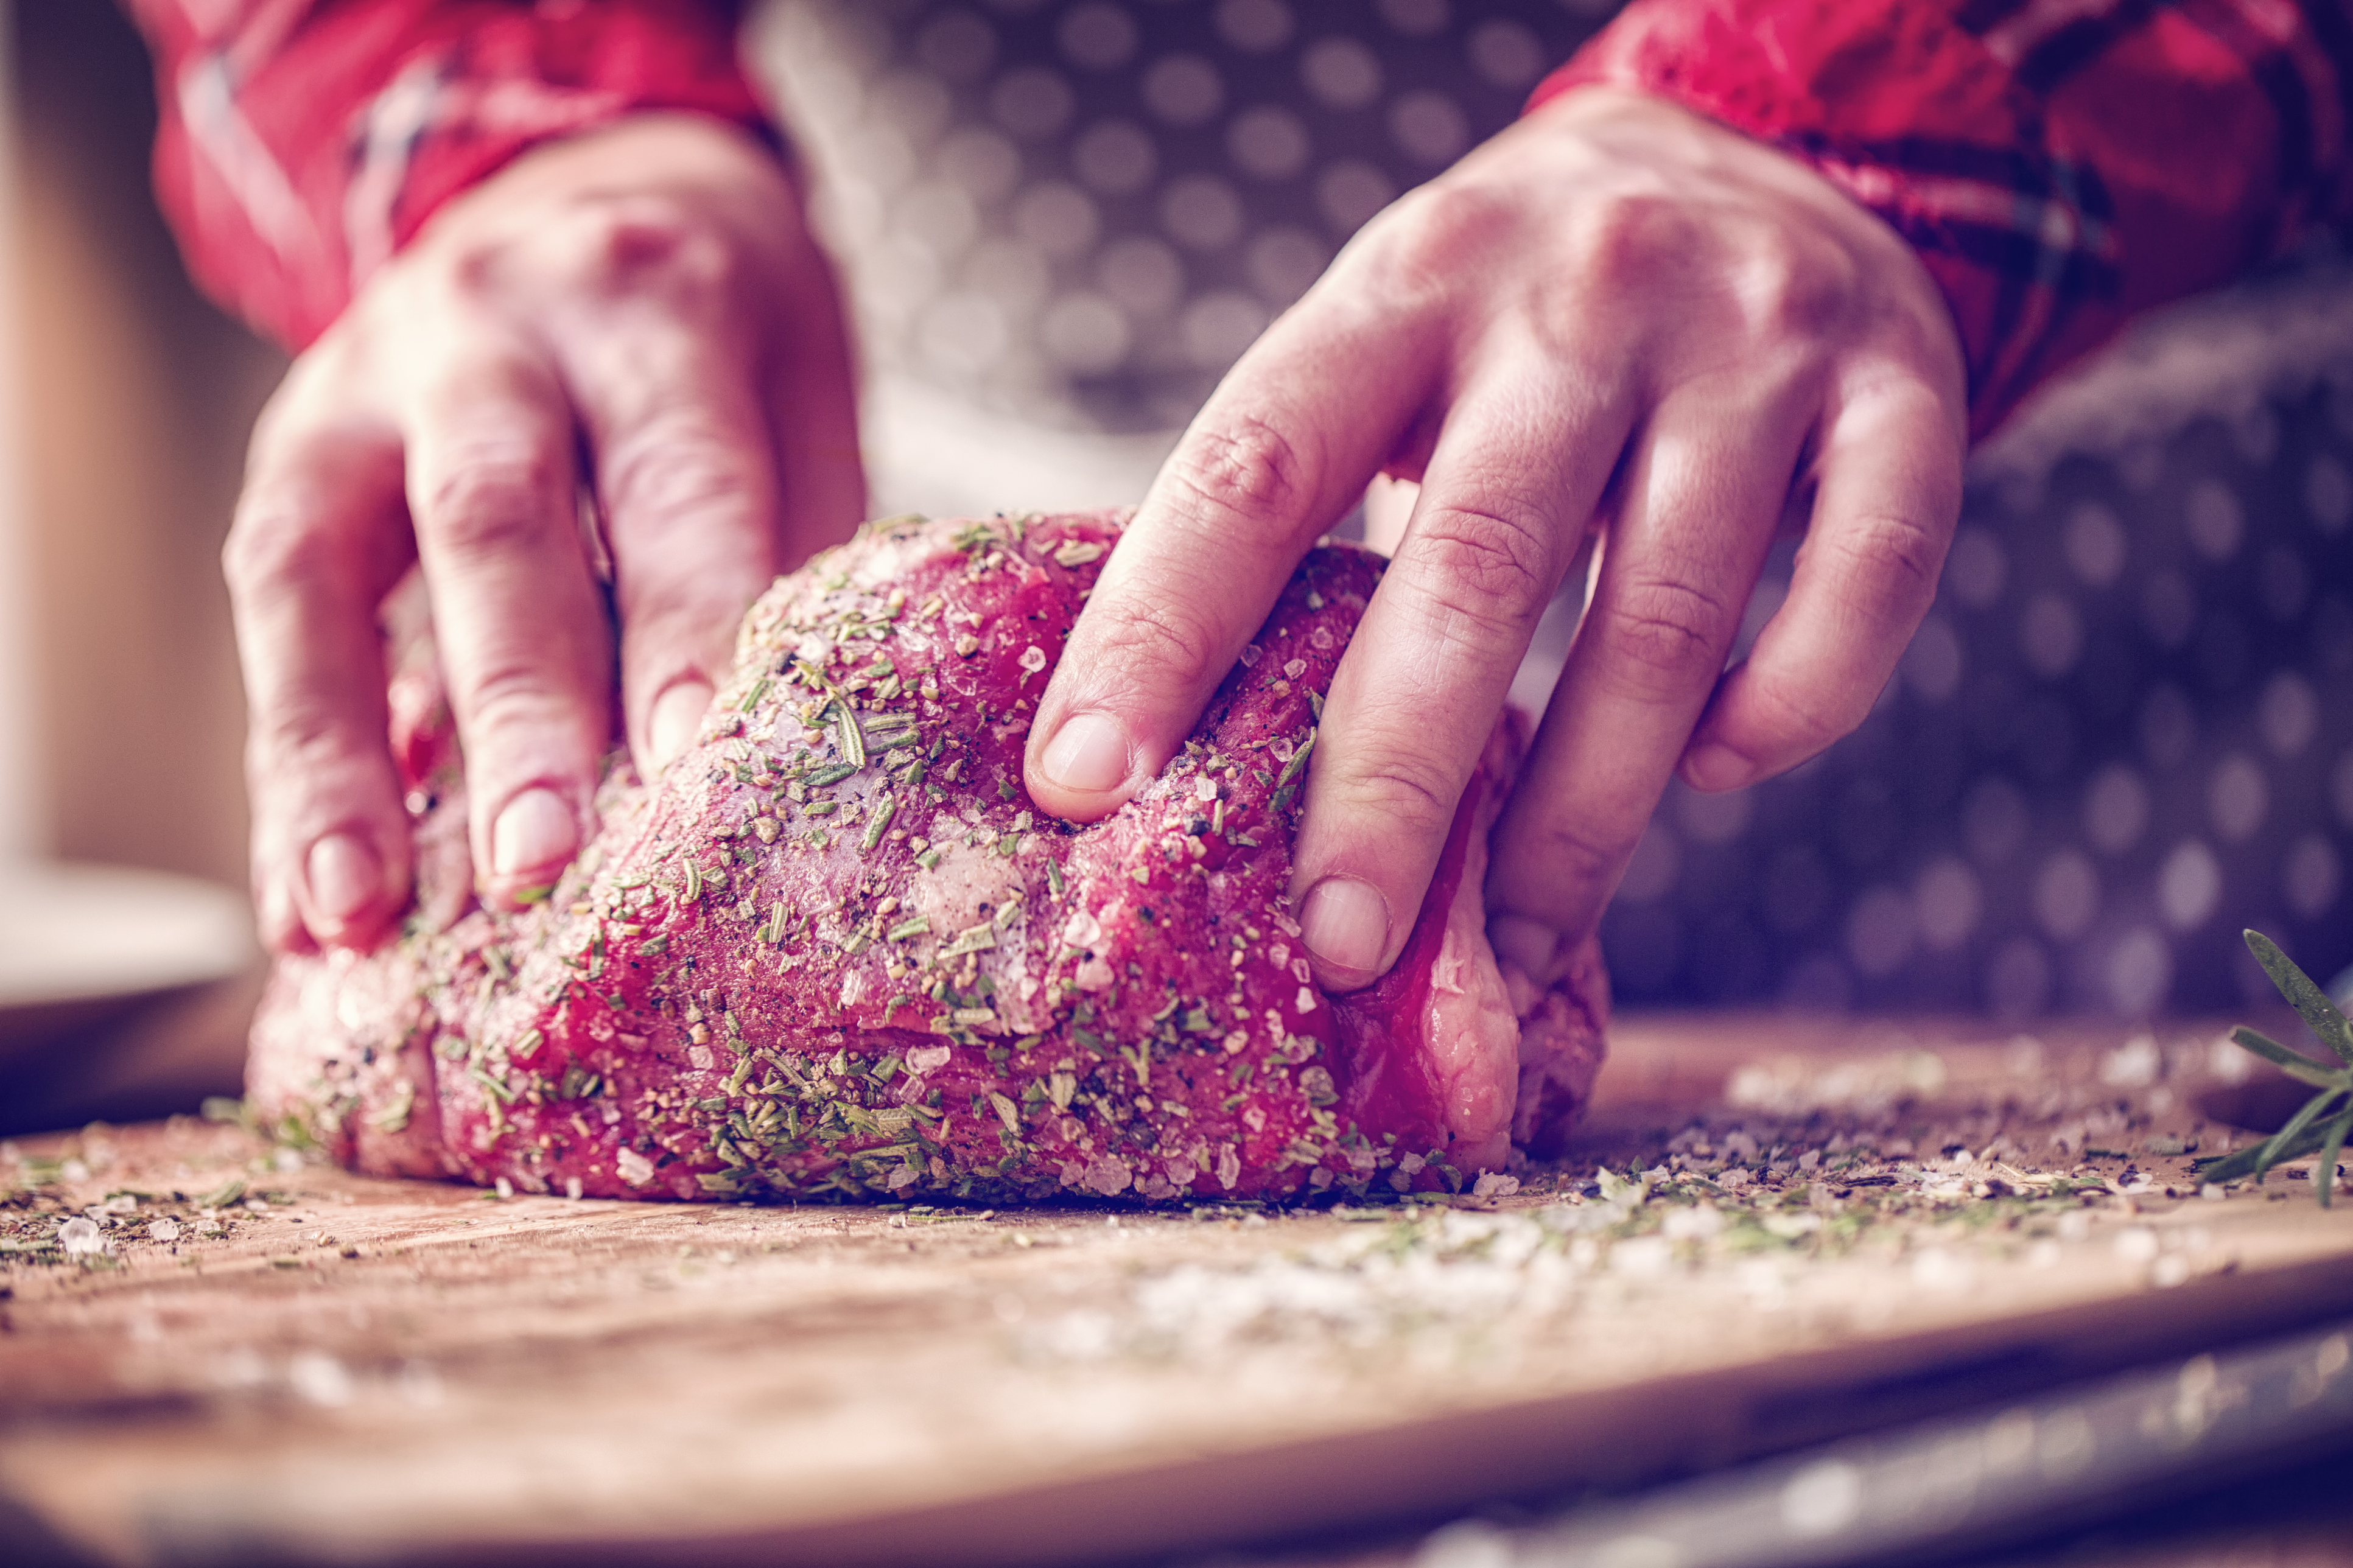 Preparing Roast Beef for lunch by rolling it into fresh herbs and spices on a wooden board.